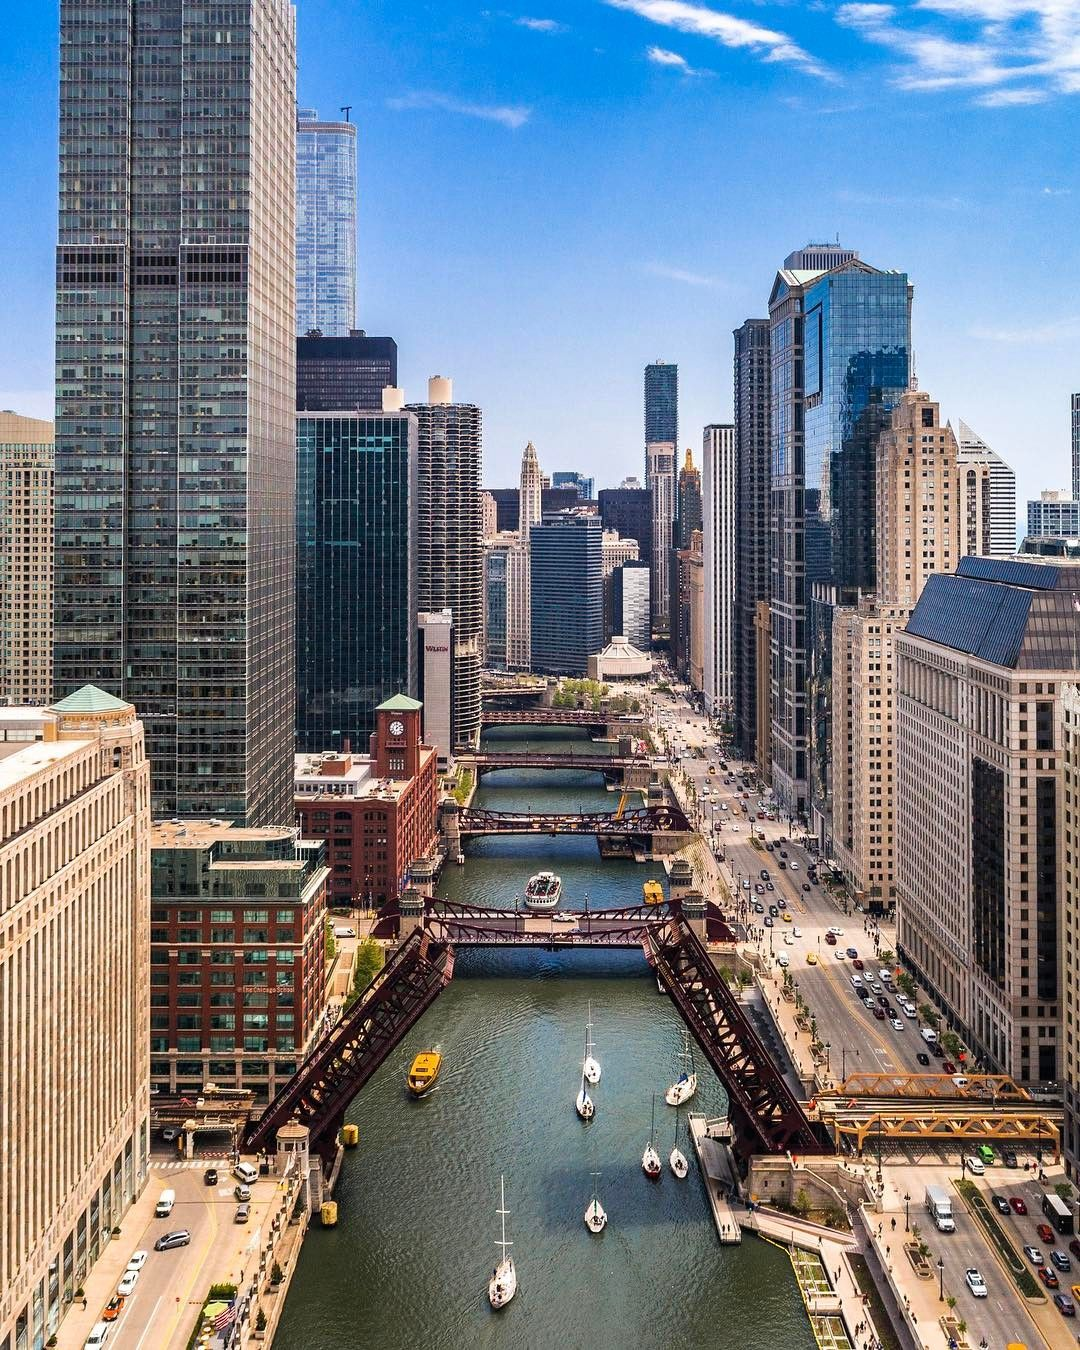 Chicago From Above: Drone Photography by Razvan Sera #inspiration #photography